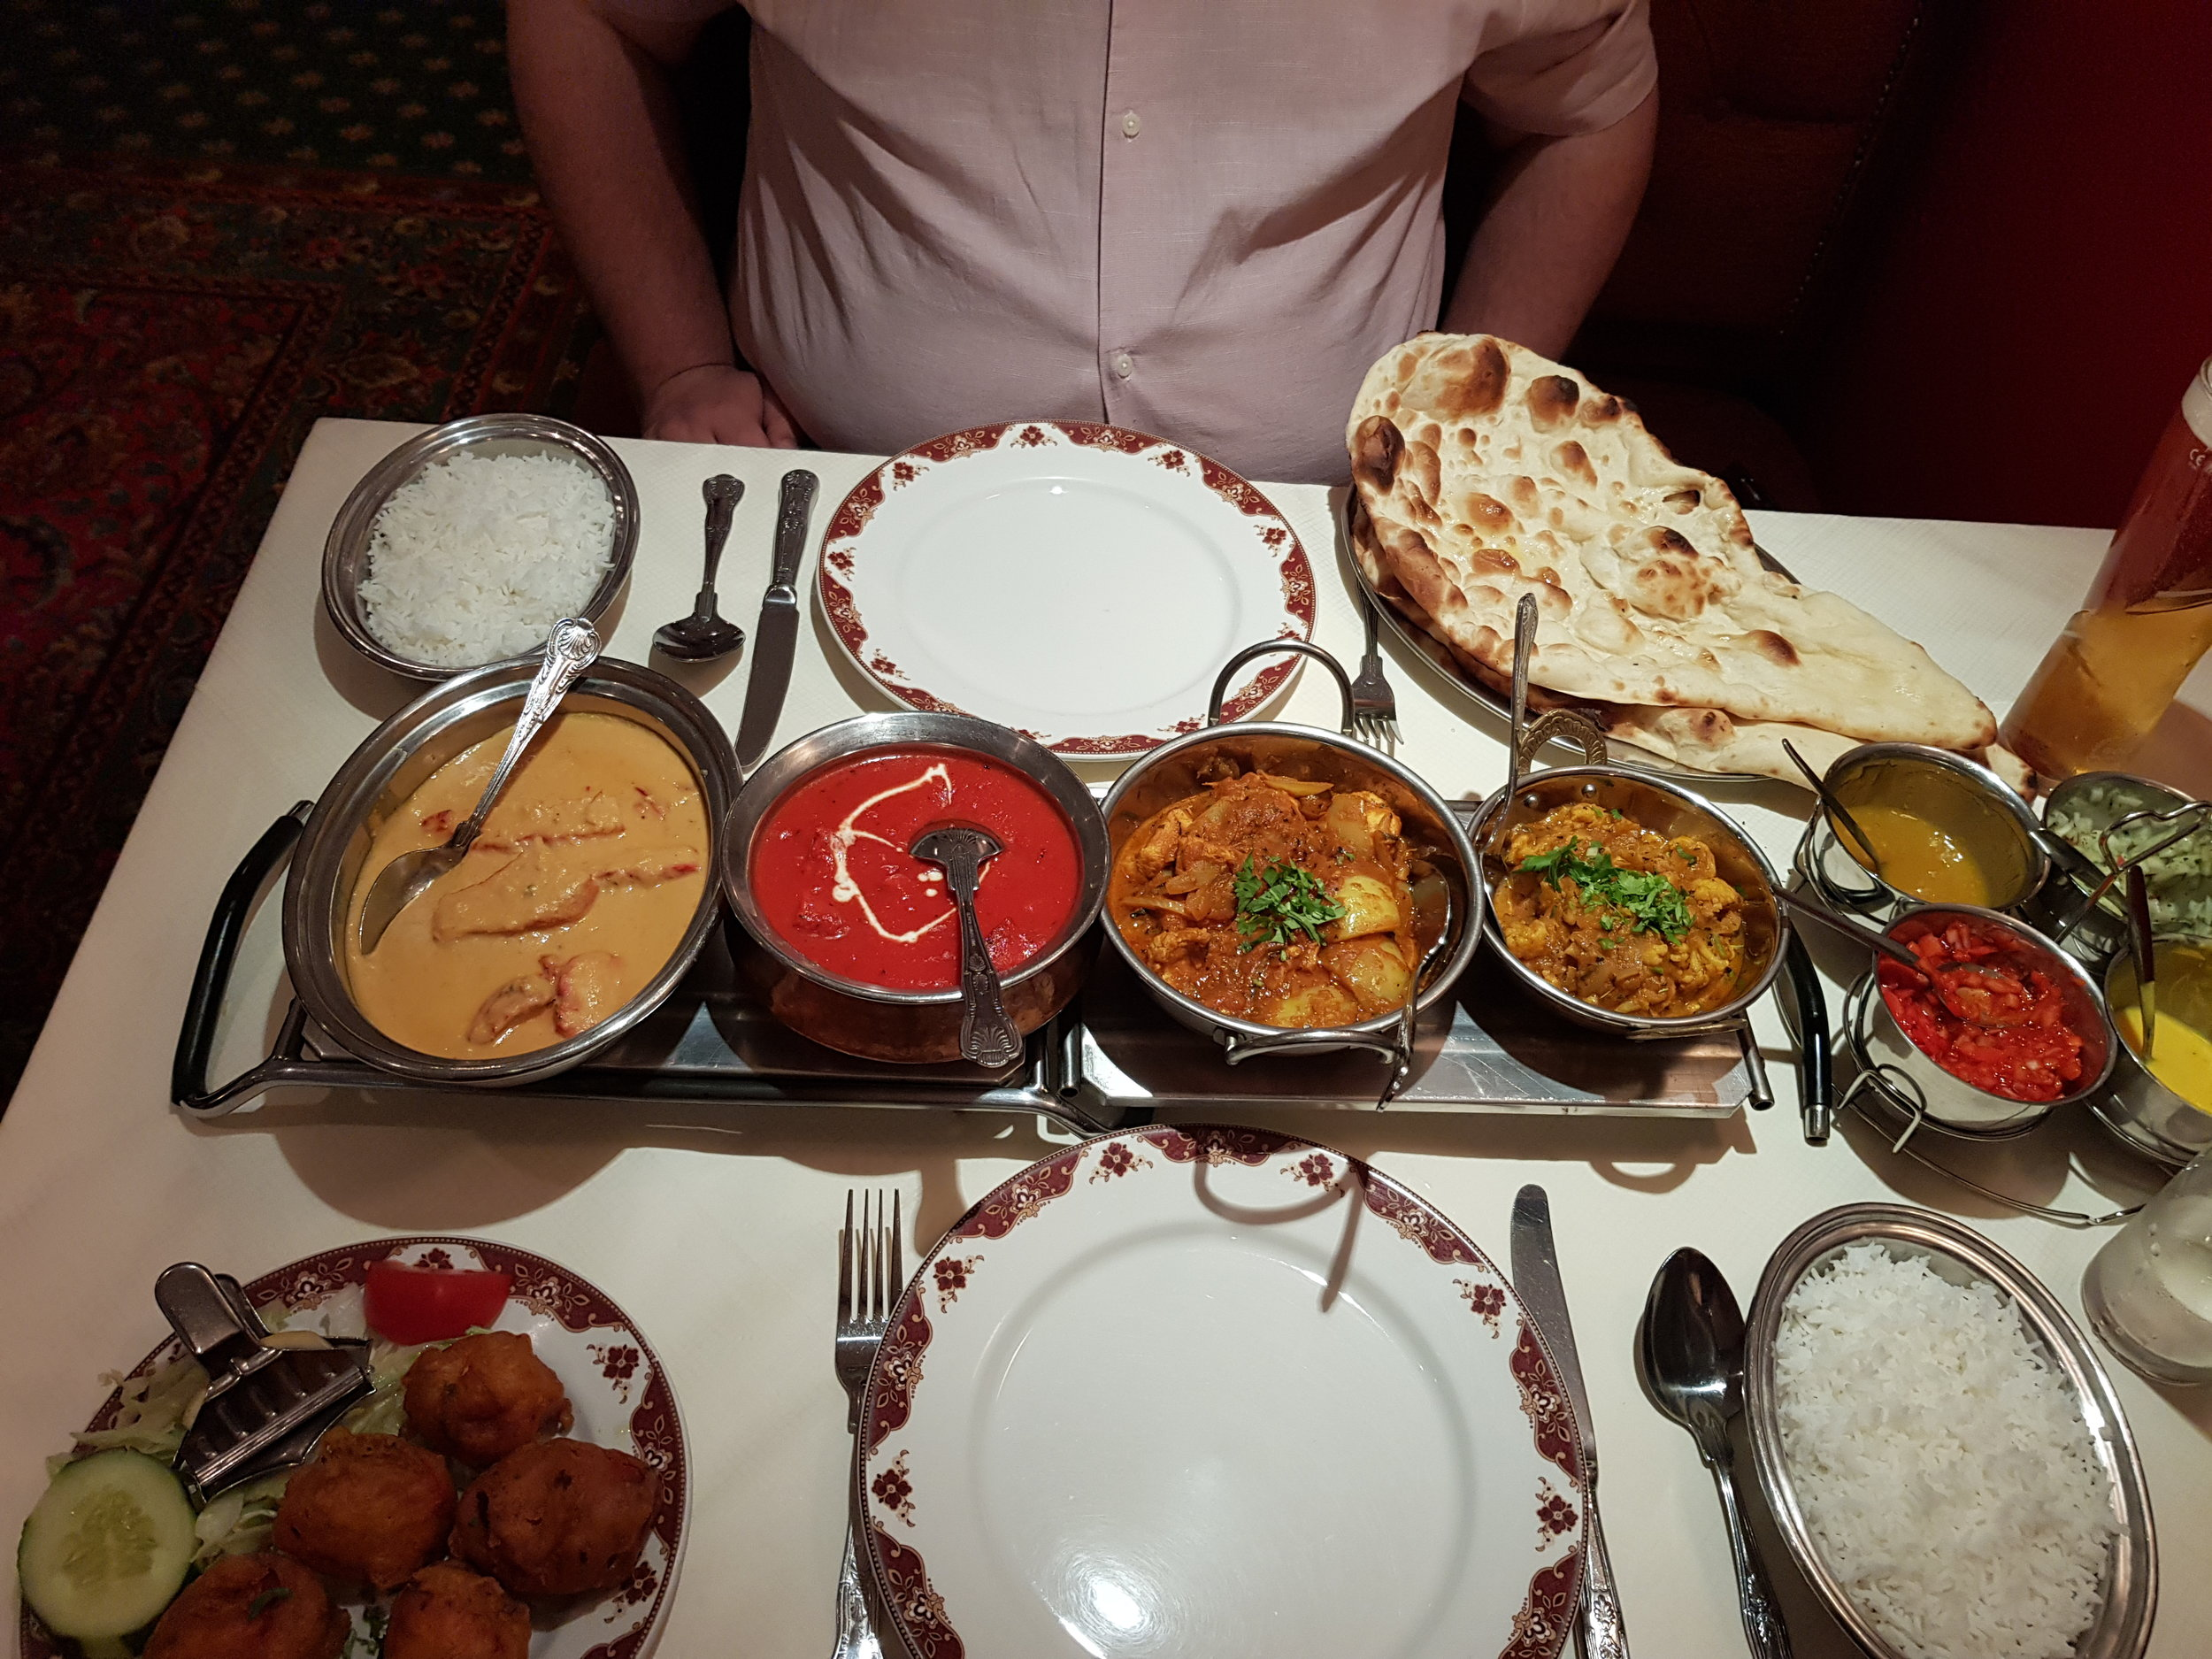 Indian restaurant food anniversary meal